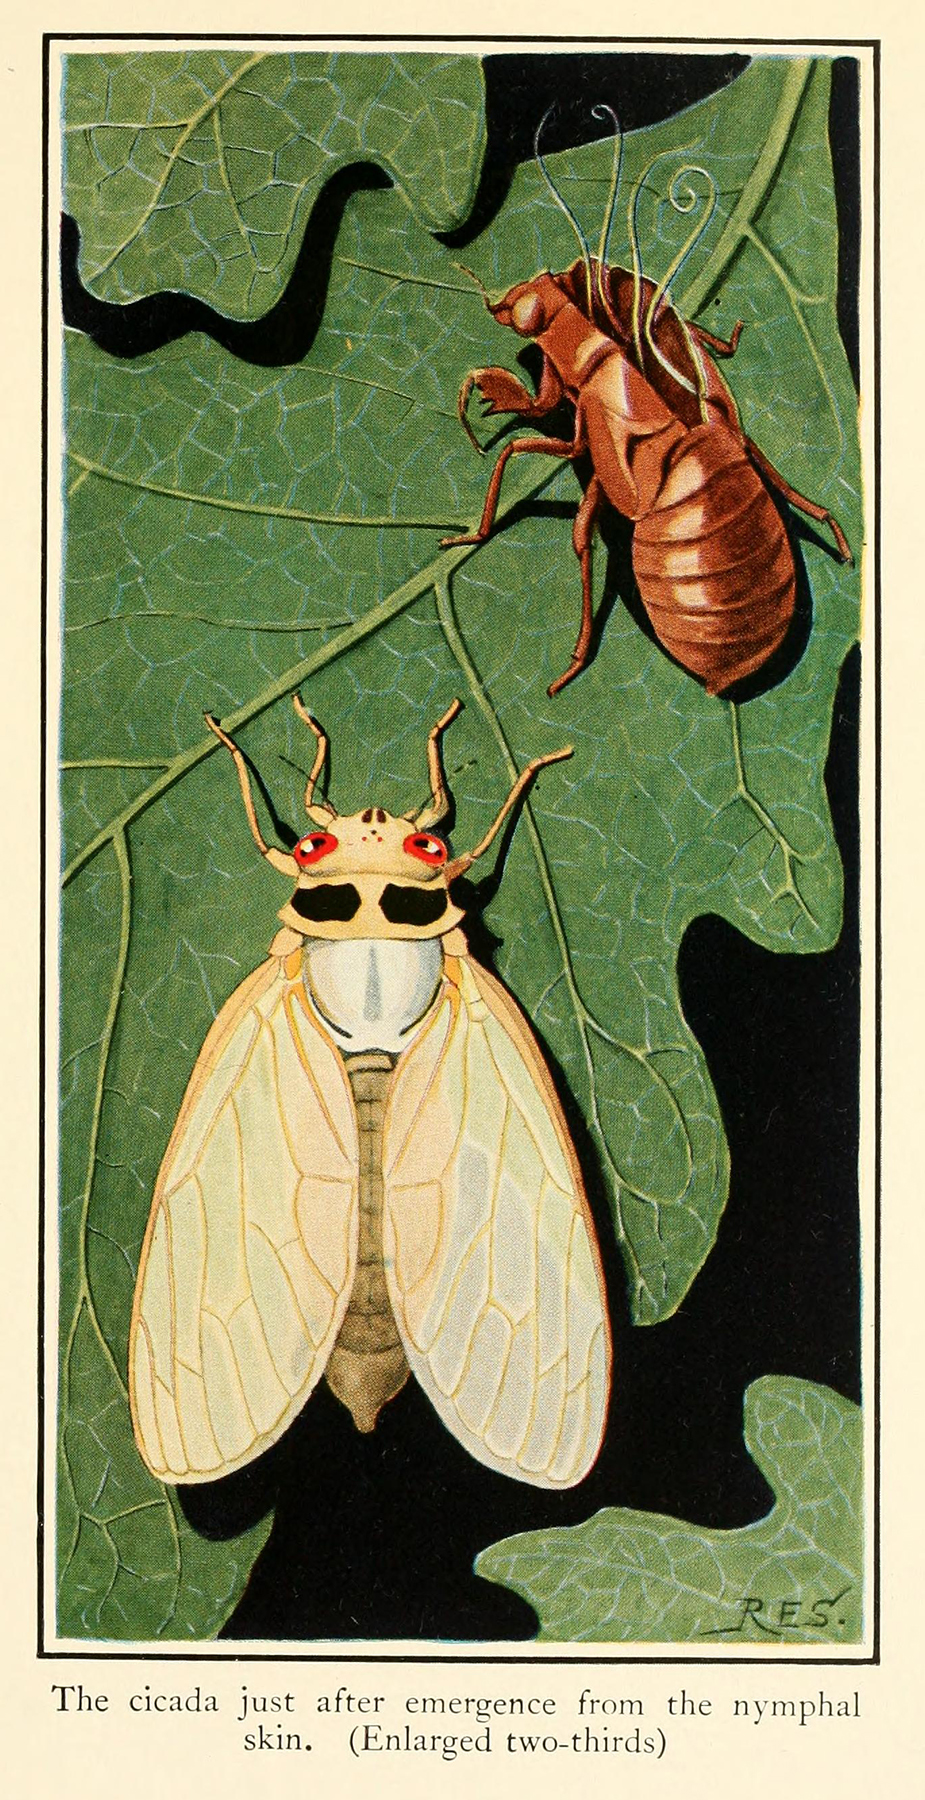 The periodical cicada as an immature adult next to its shed nymphal skin.